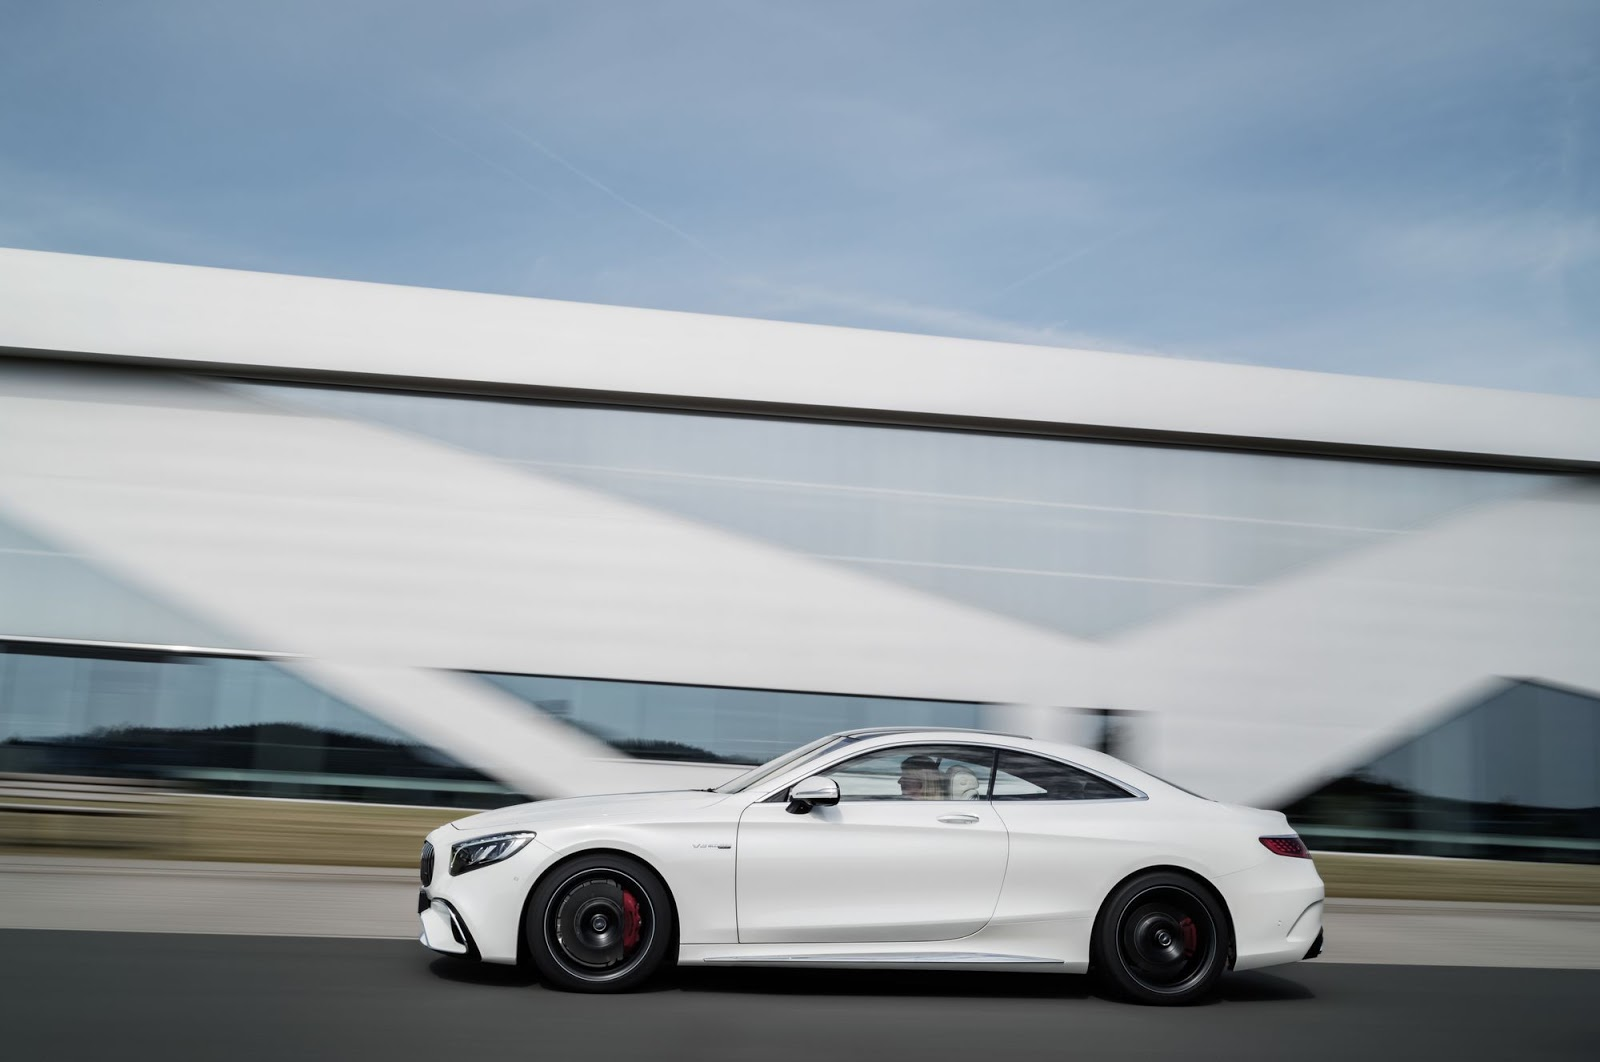 Mercedes-AMG S 63 4MATIC+ Coupé, 2017. Exterieur: designo diamantweiß bright;Kraftstoffverbrauch kombiniert: 9,3 l/100 km; CO2-Emissionen kombiniert: 211 g/km*